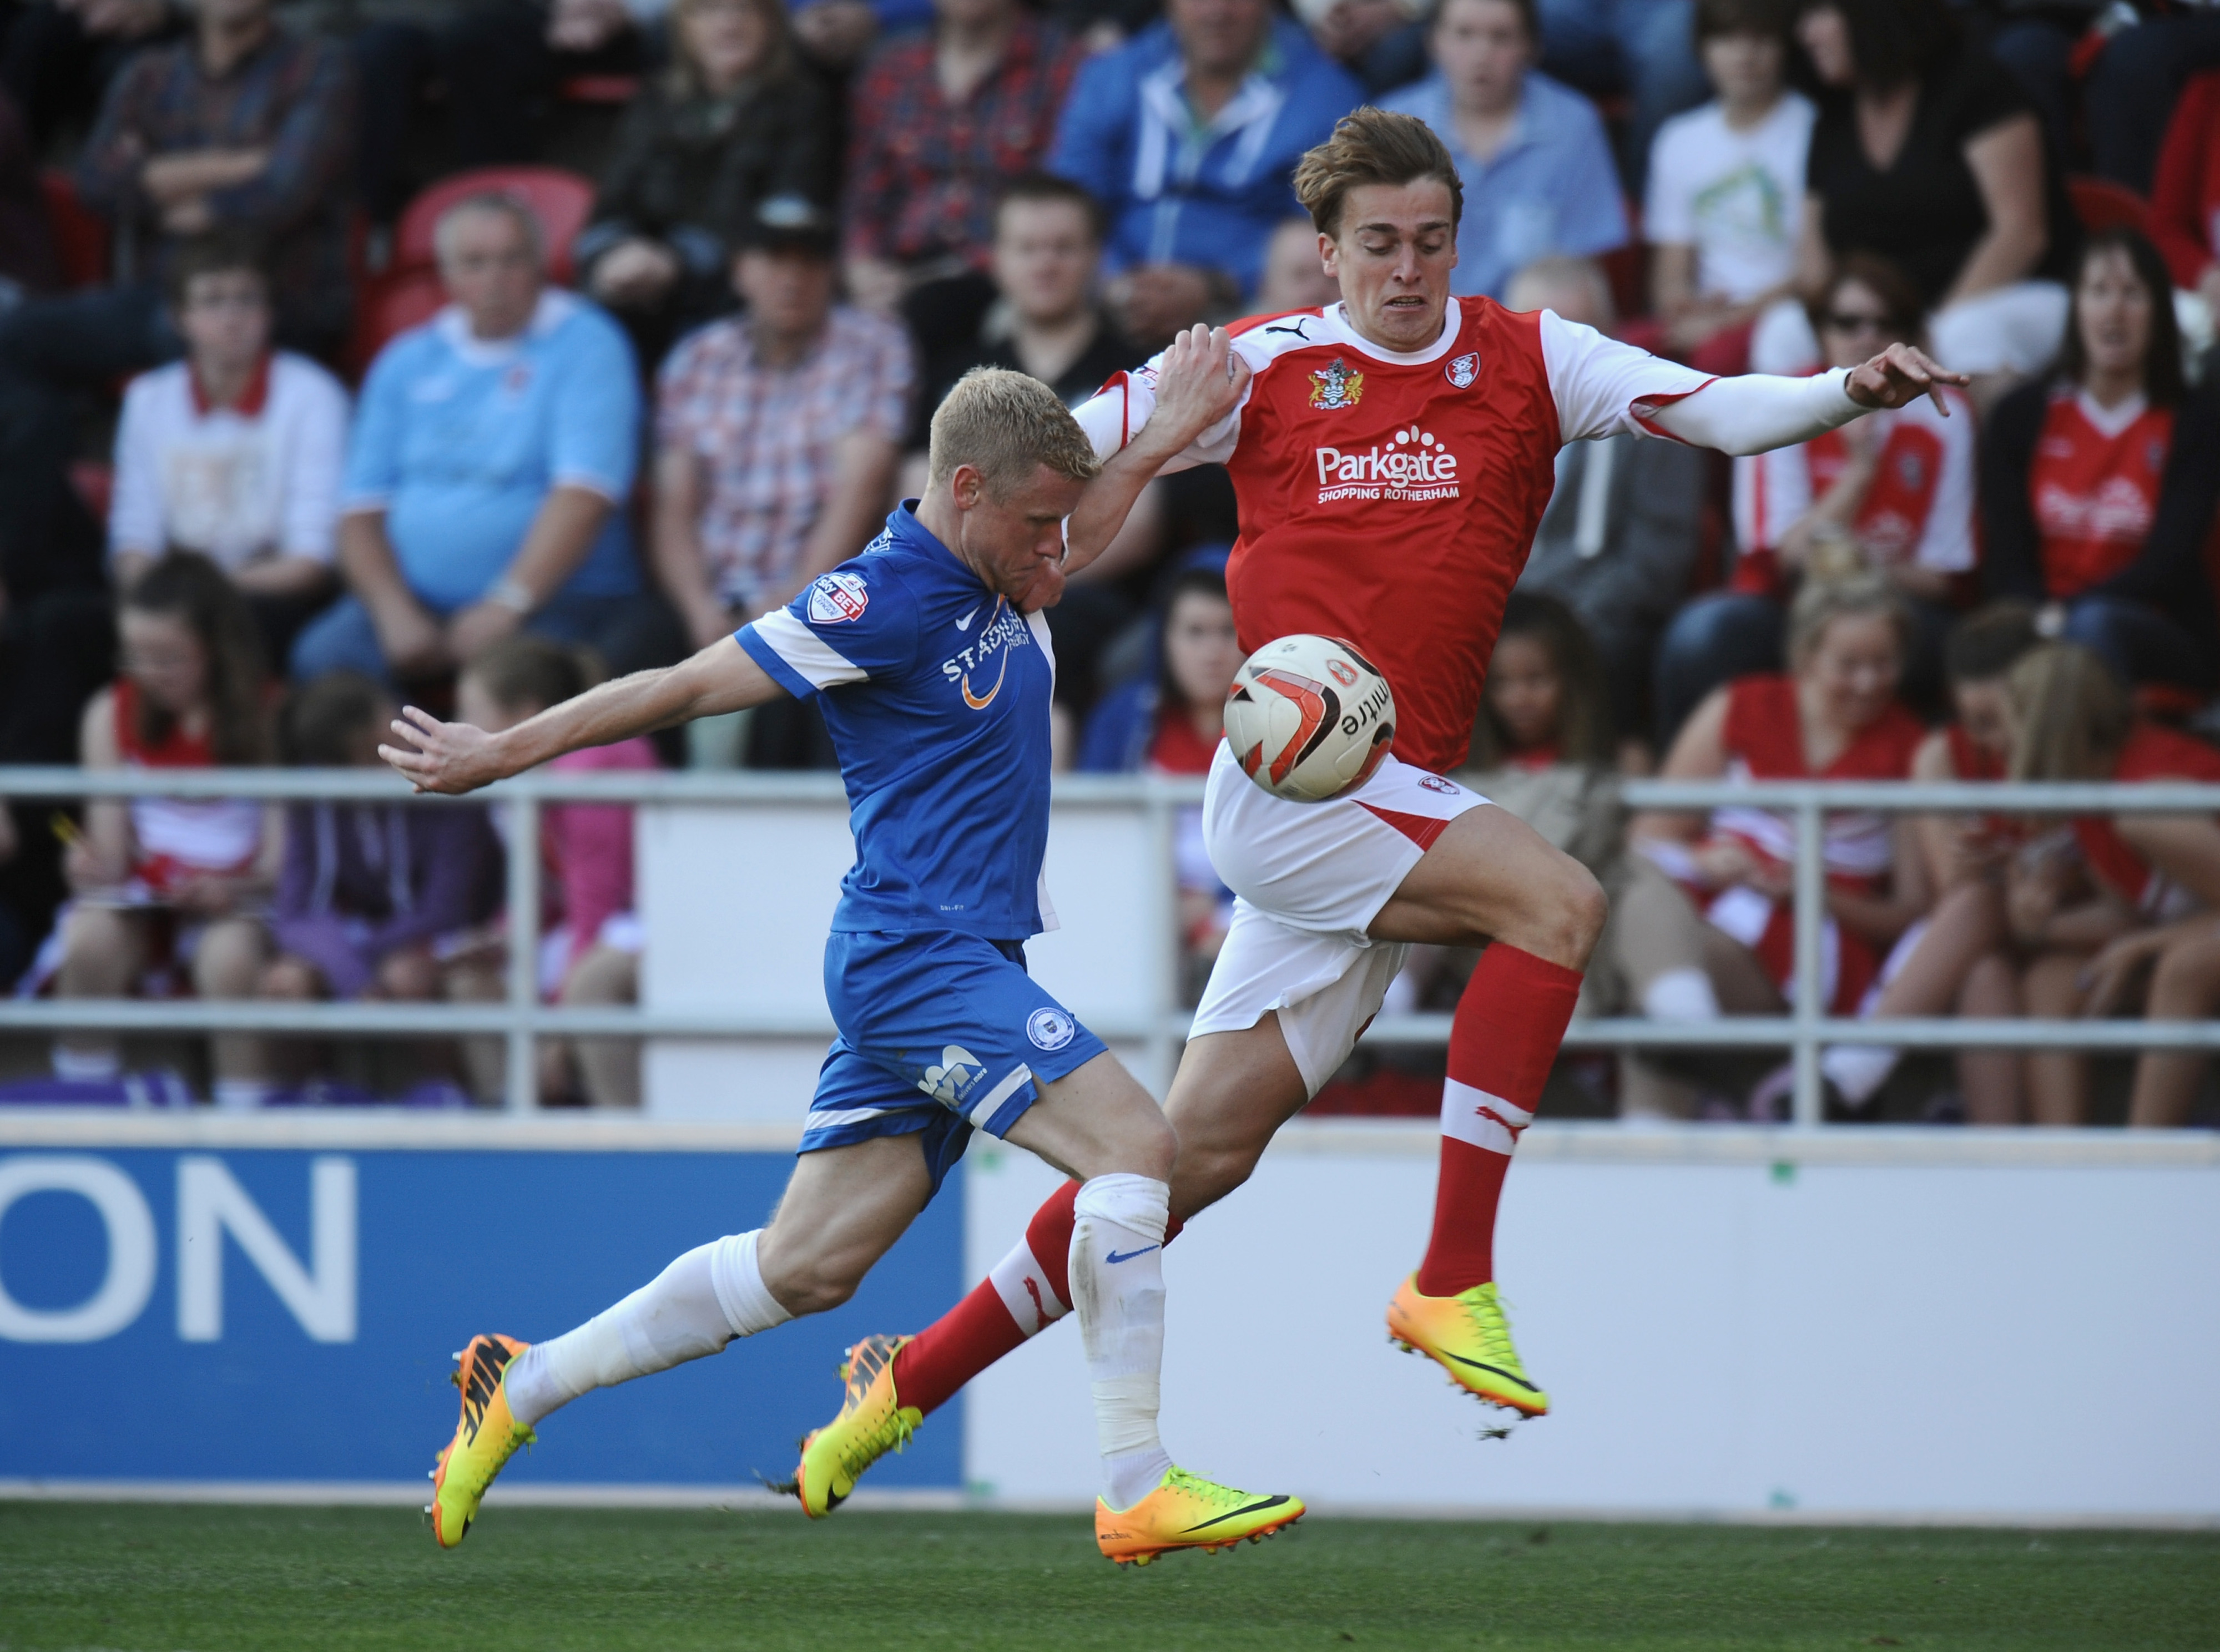 Eaves in action for 'The Millers' against Peterborough.